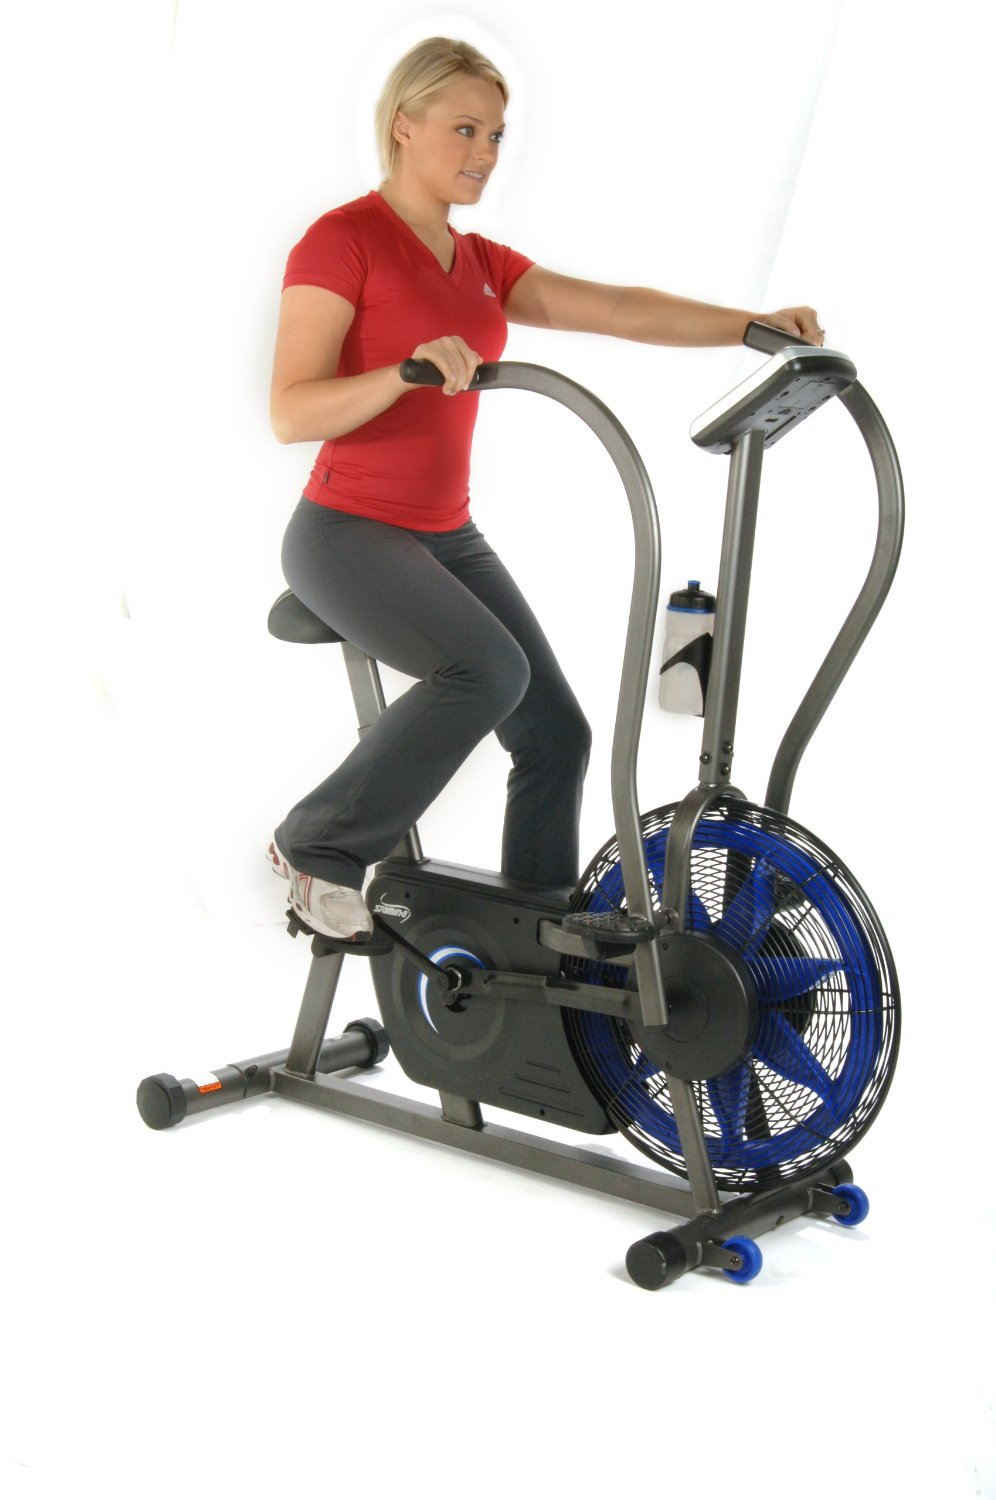 Are Dual Action Exercise Bikes Good For Upper And Lower